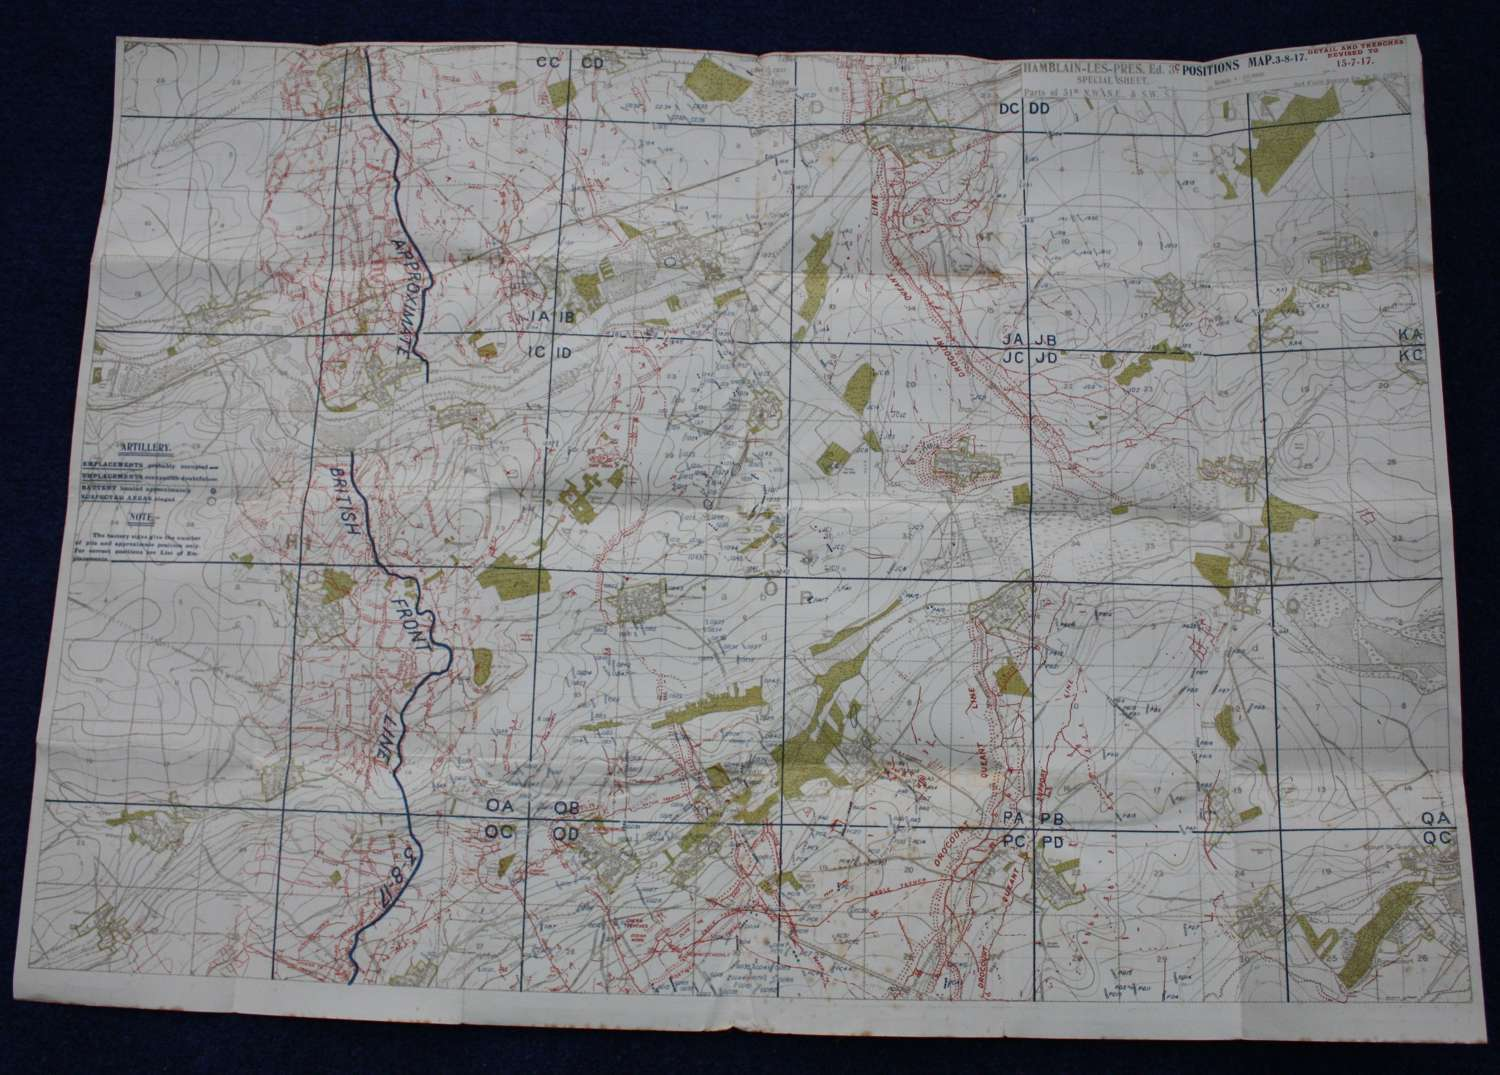 WW1 British Army Trench Map France: 51B. July 1917. Scale 1:20,000